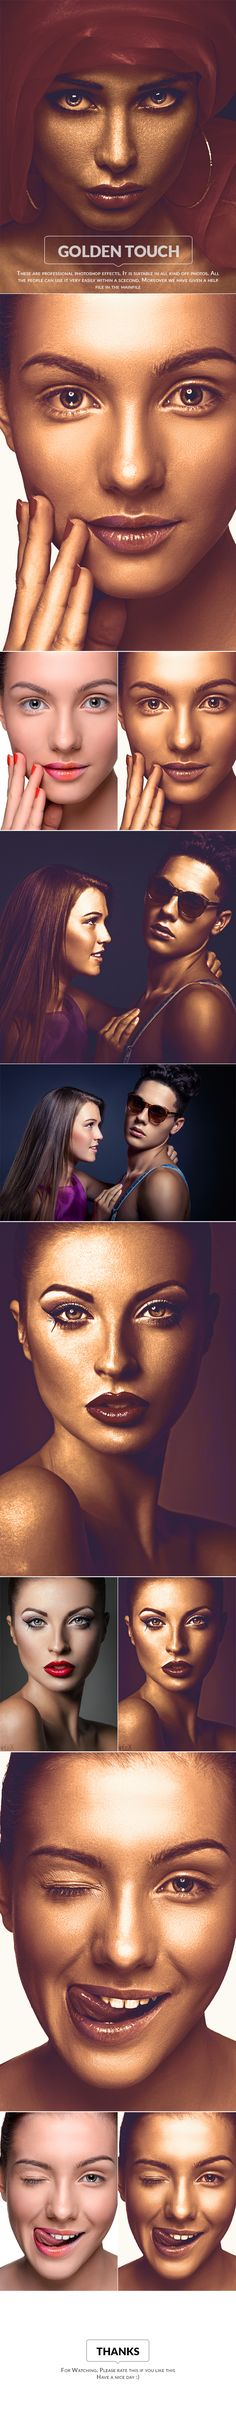 Golden touch Photo Effect - Photo Effects Actions